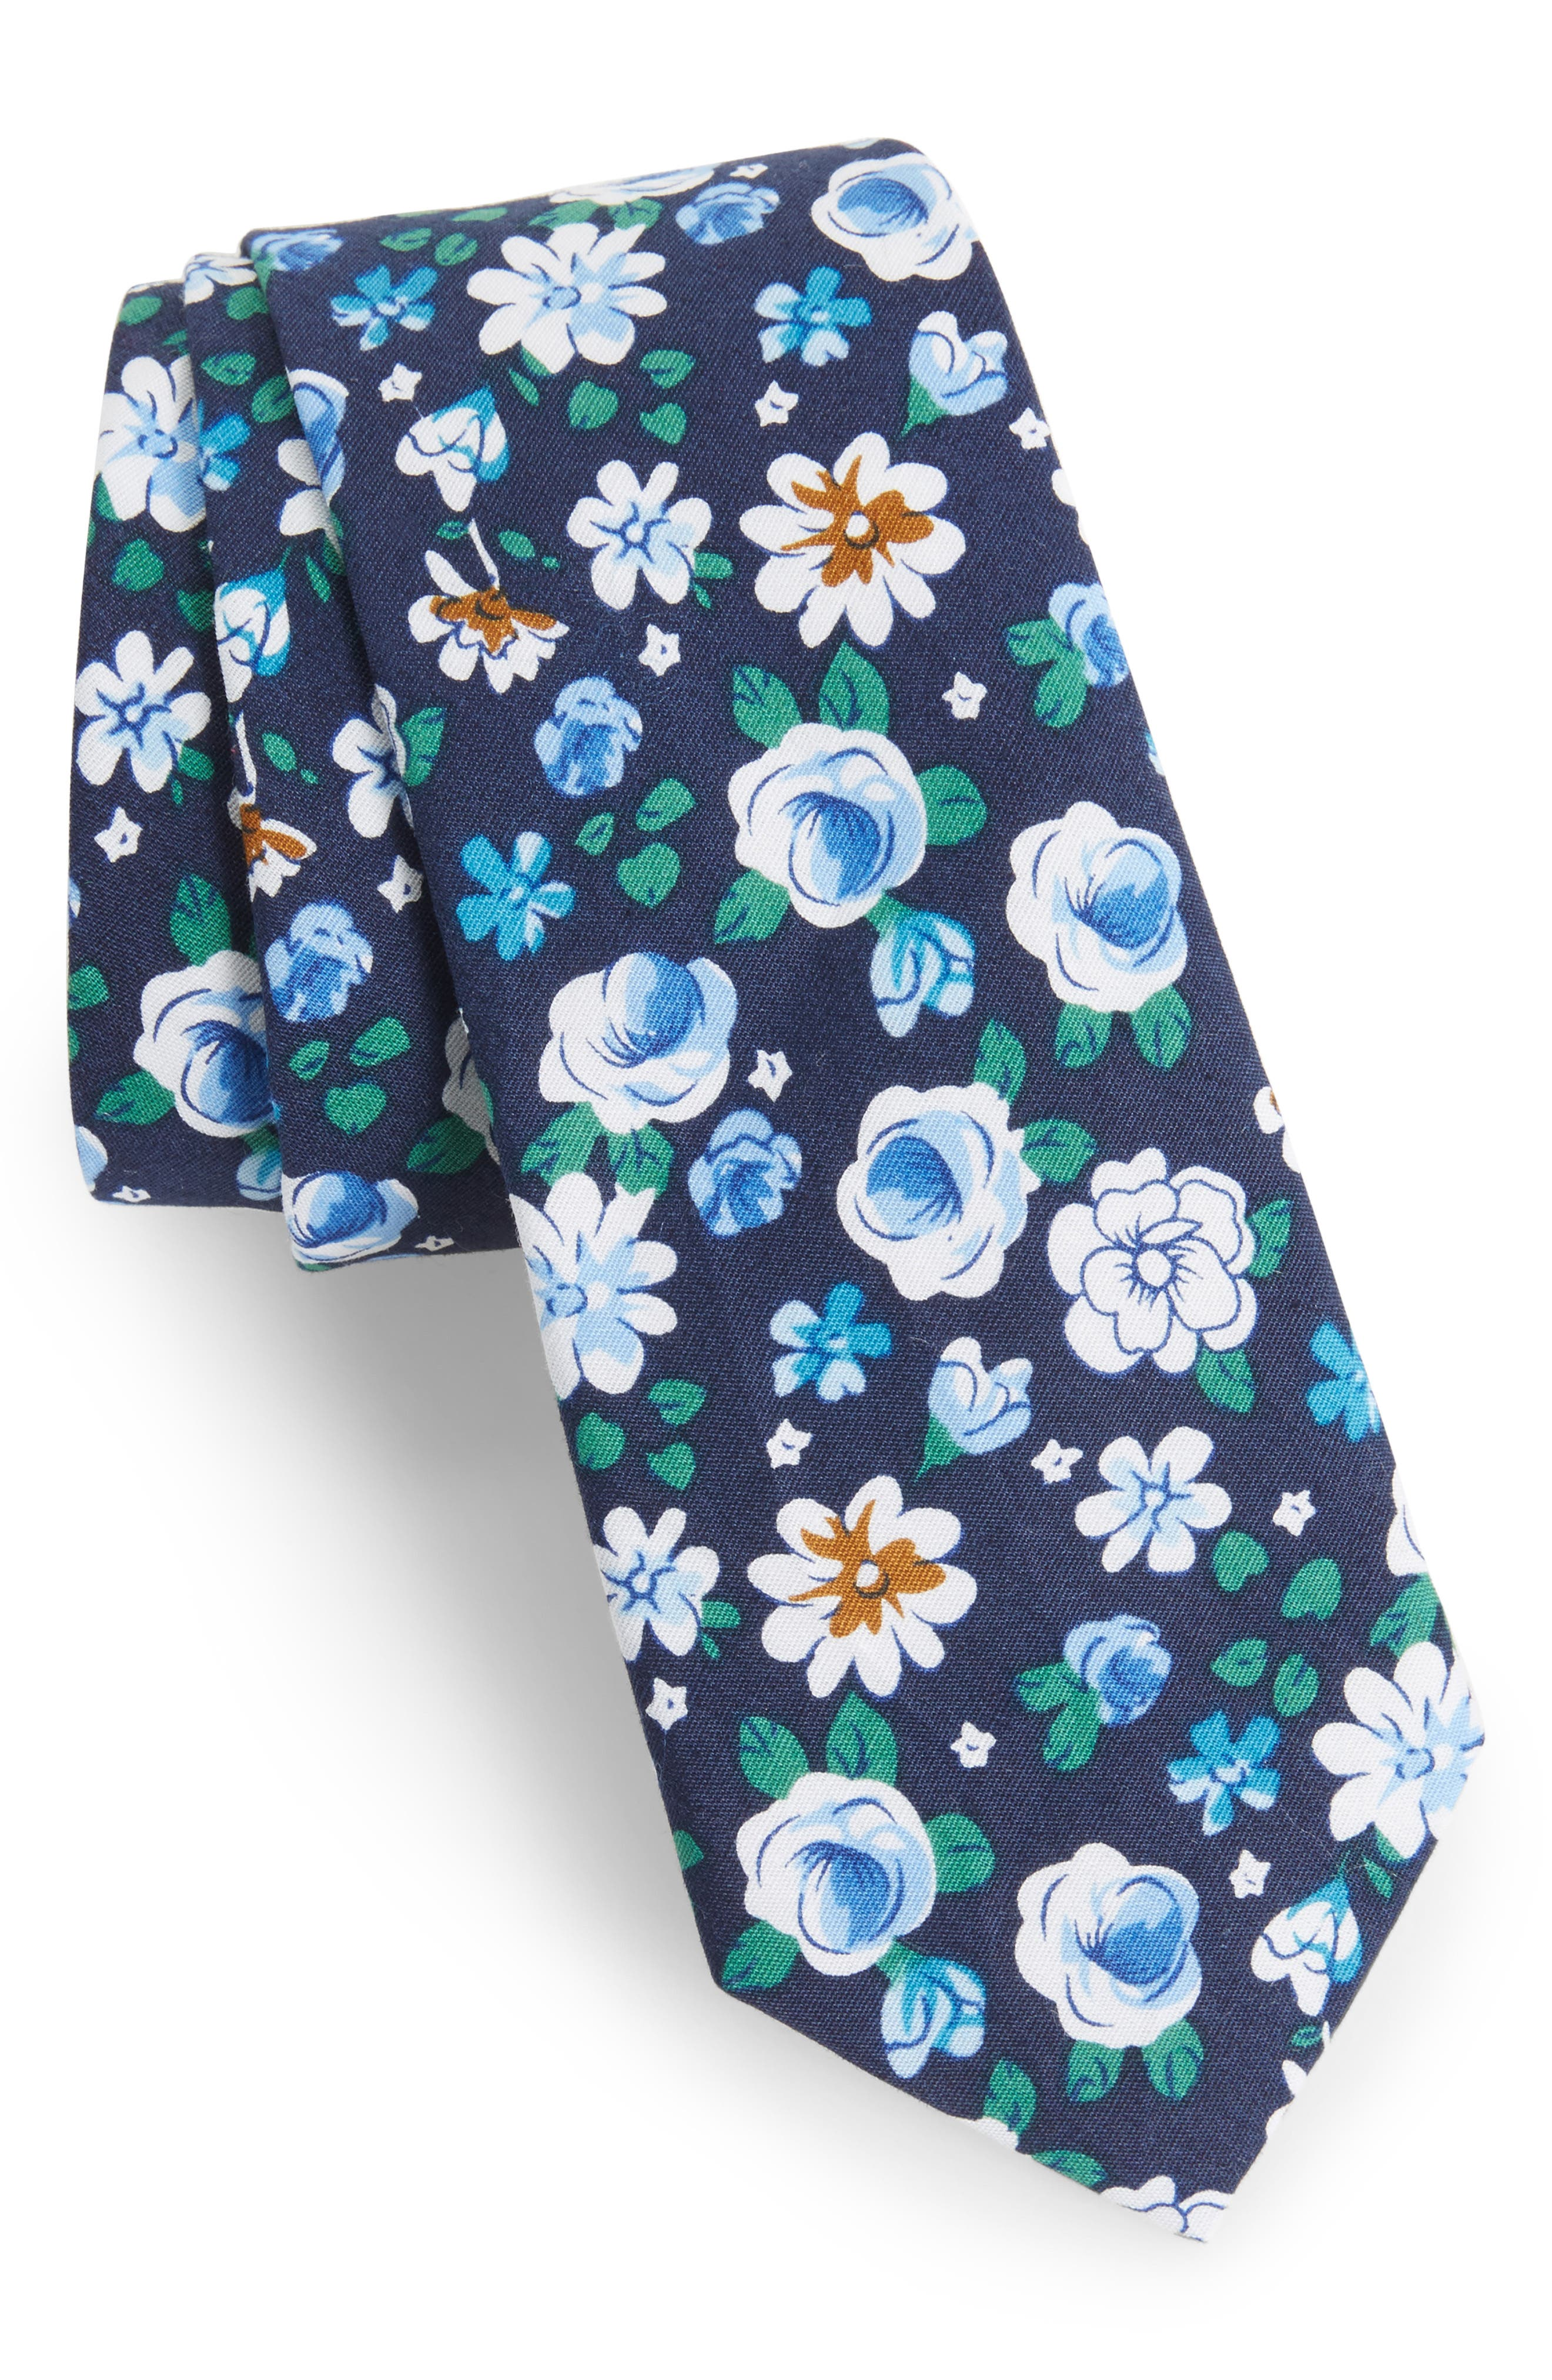 Frenso Floral Cotton Skinny Tie,                         Main,                         color, Blue